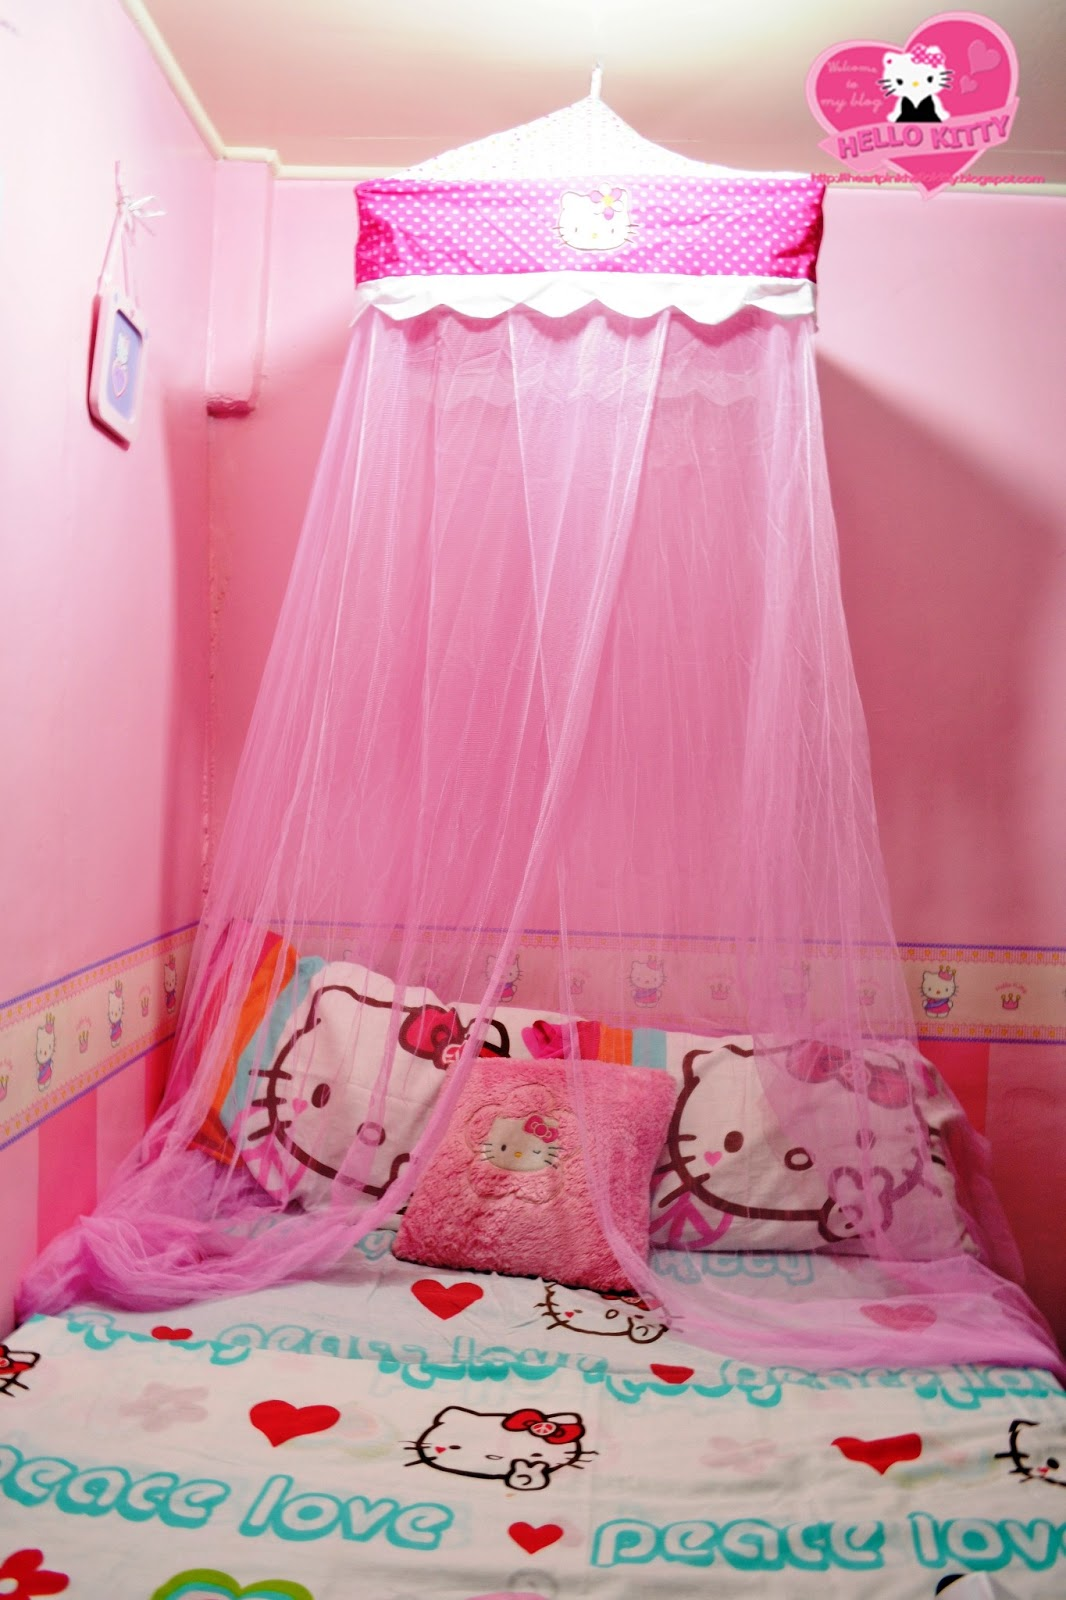 Hello Kitty Bedroom Idea Interior Decorating and Home Design Ideas